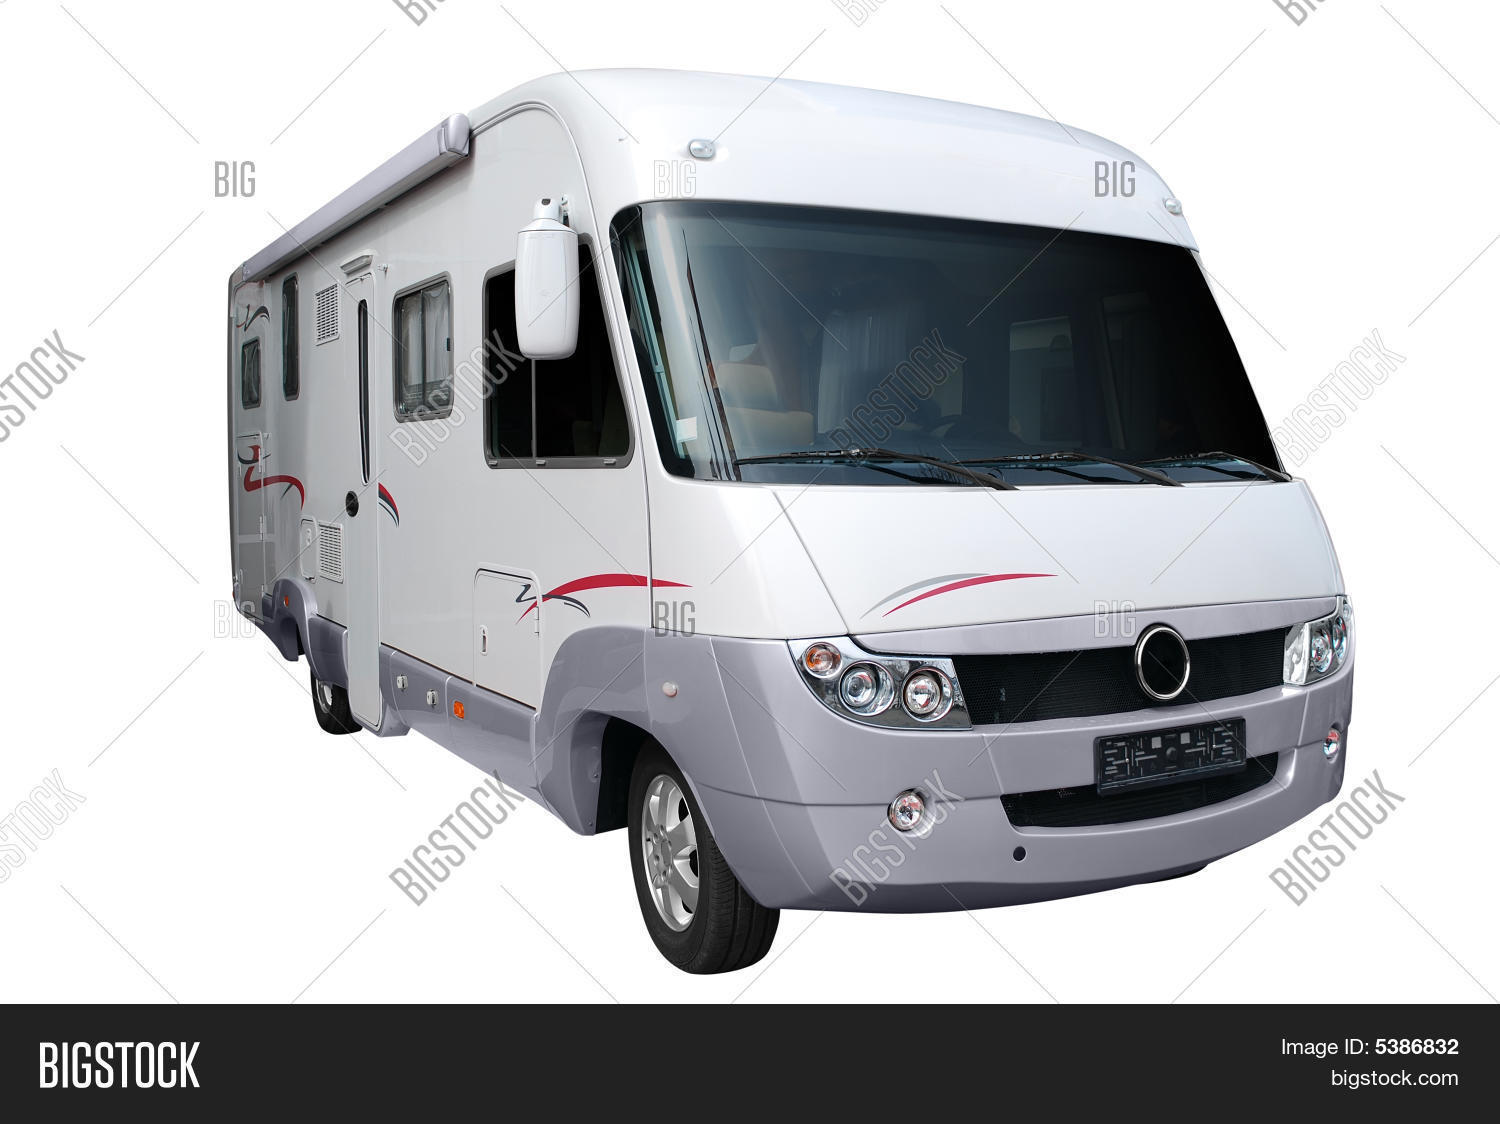 Rv Truck Front Image Photo Free Trial Bigstock